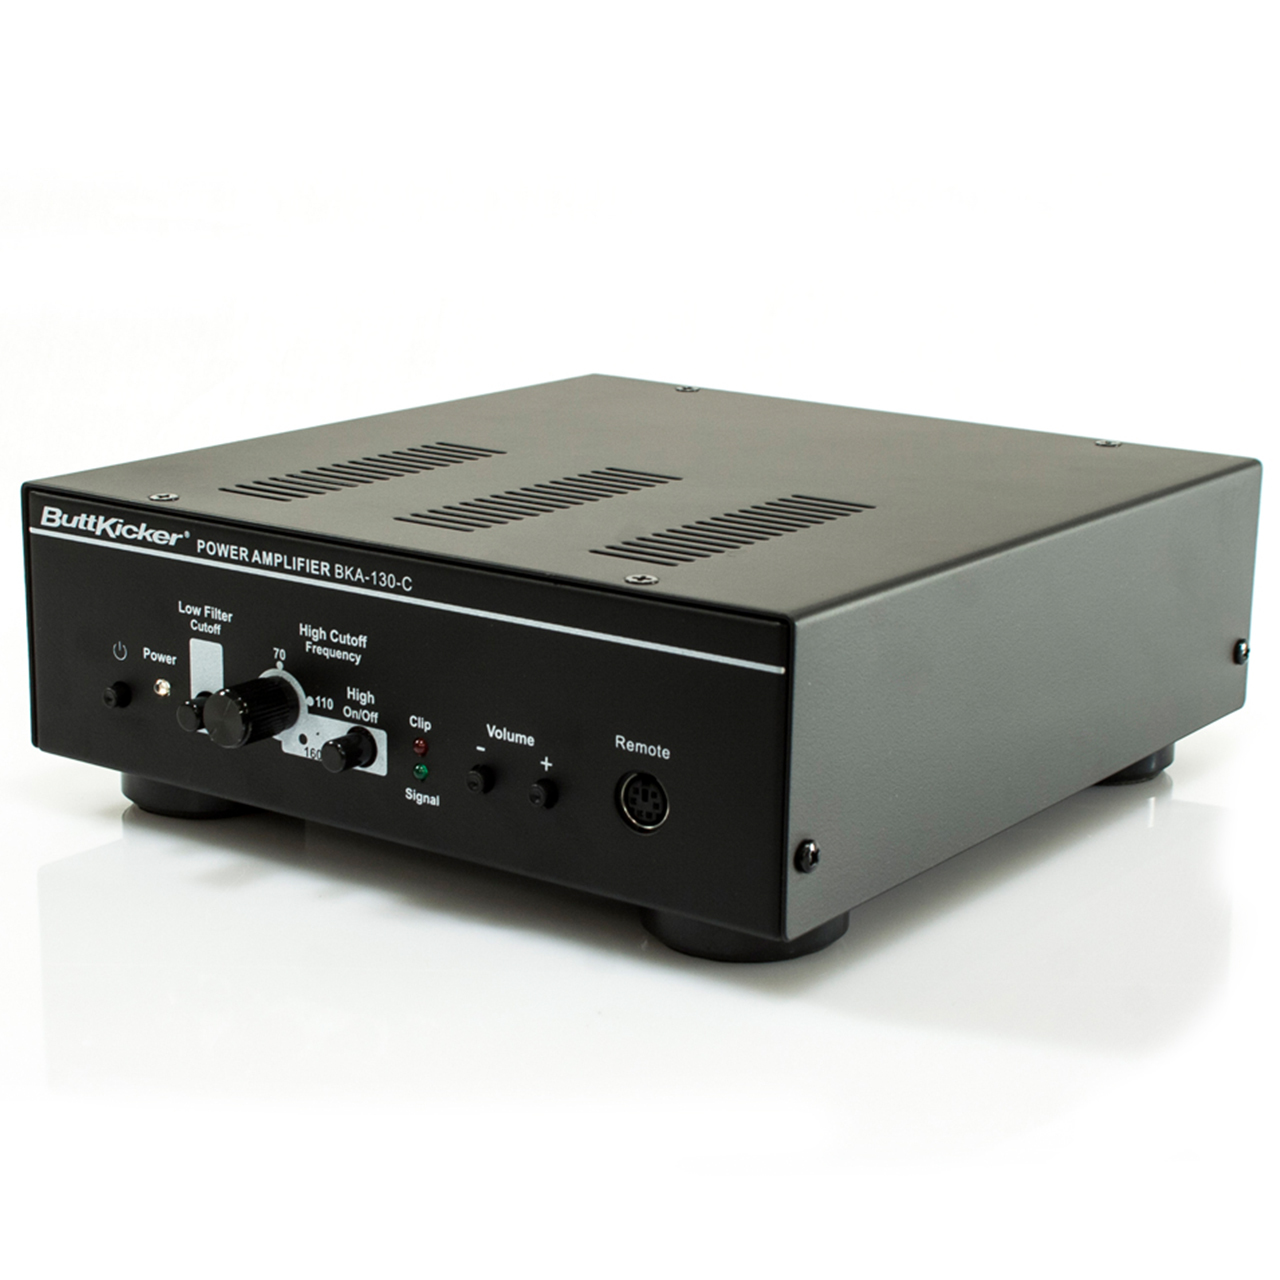 Dayton Audio 150w Power Amplifier Buttkicker Bka 1000 N Watt Smoke Tronics Apa150 Usd 16999 Add To Cart